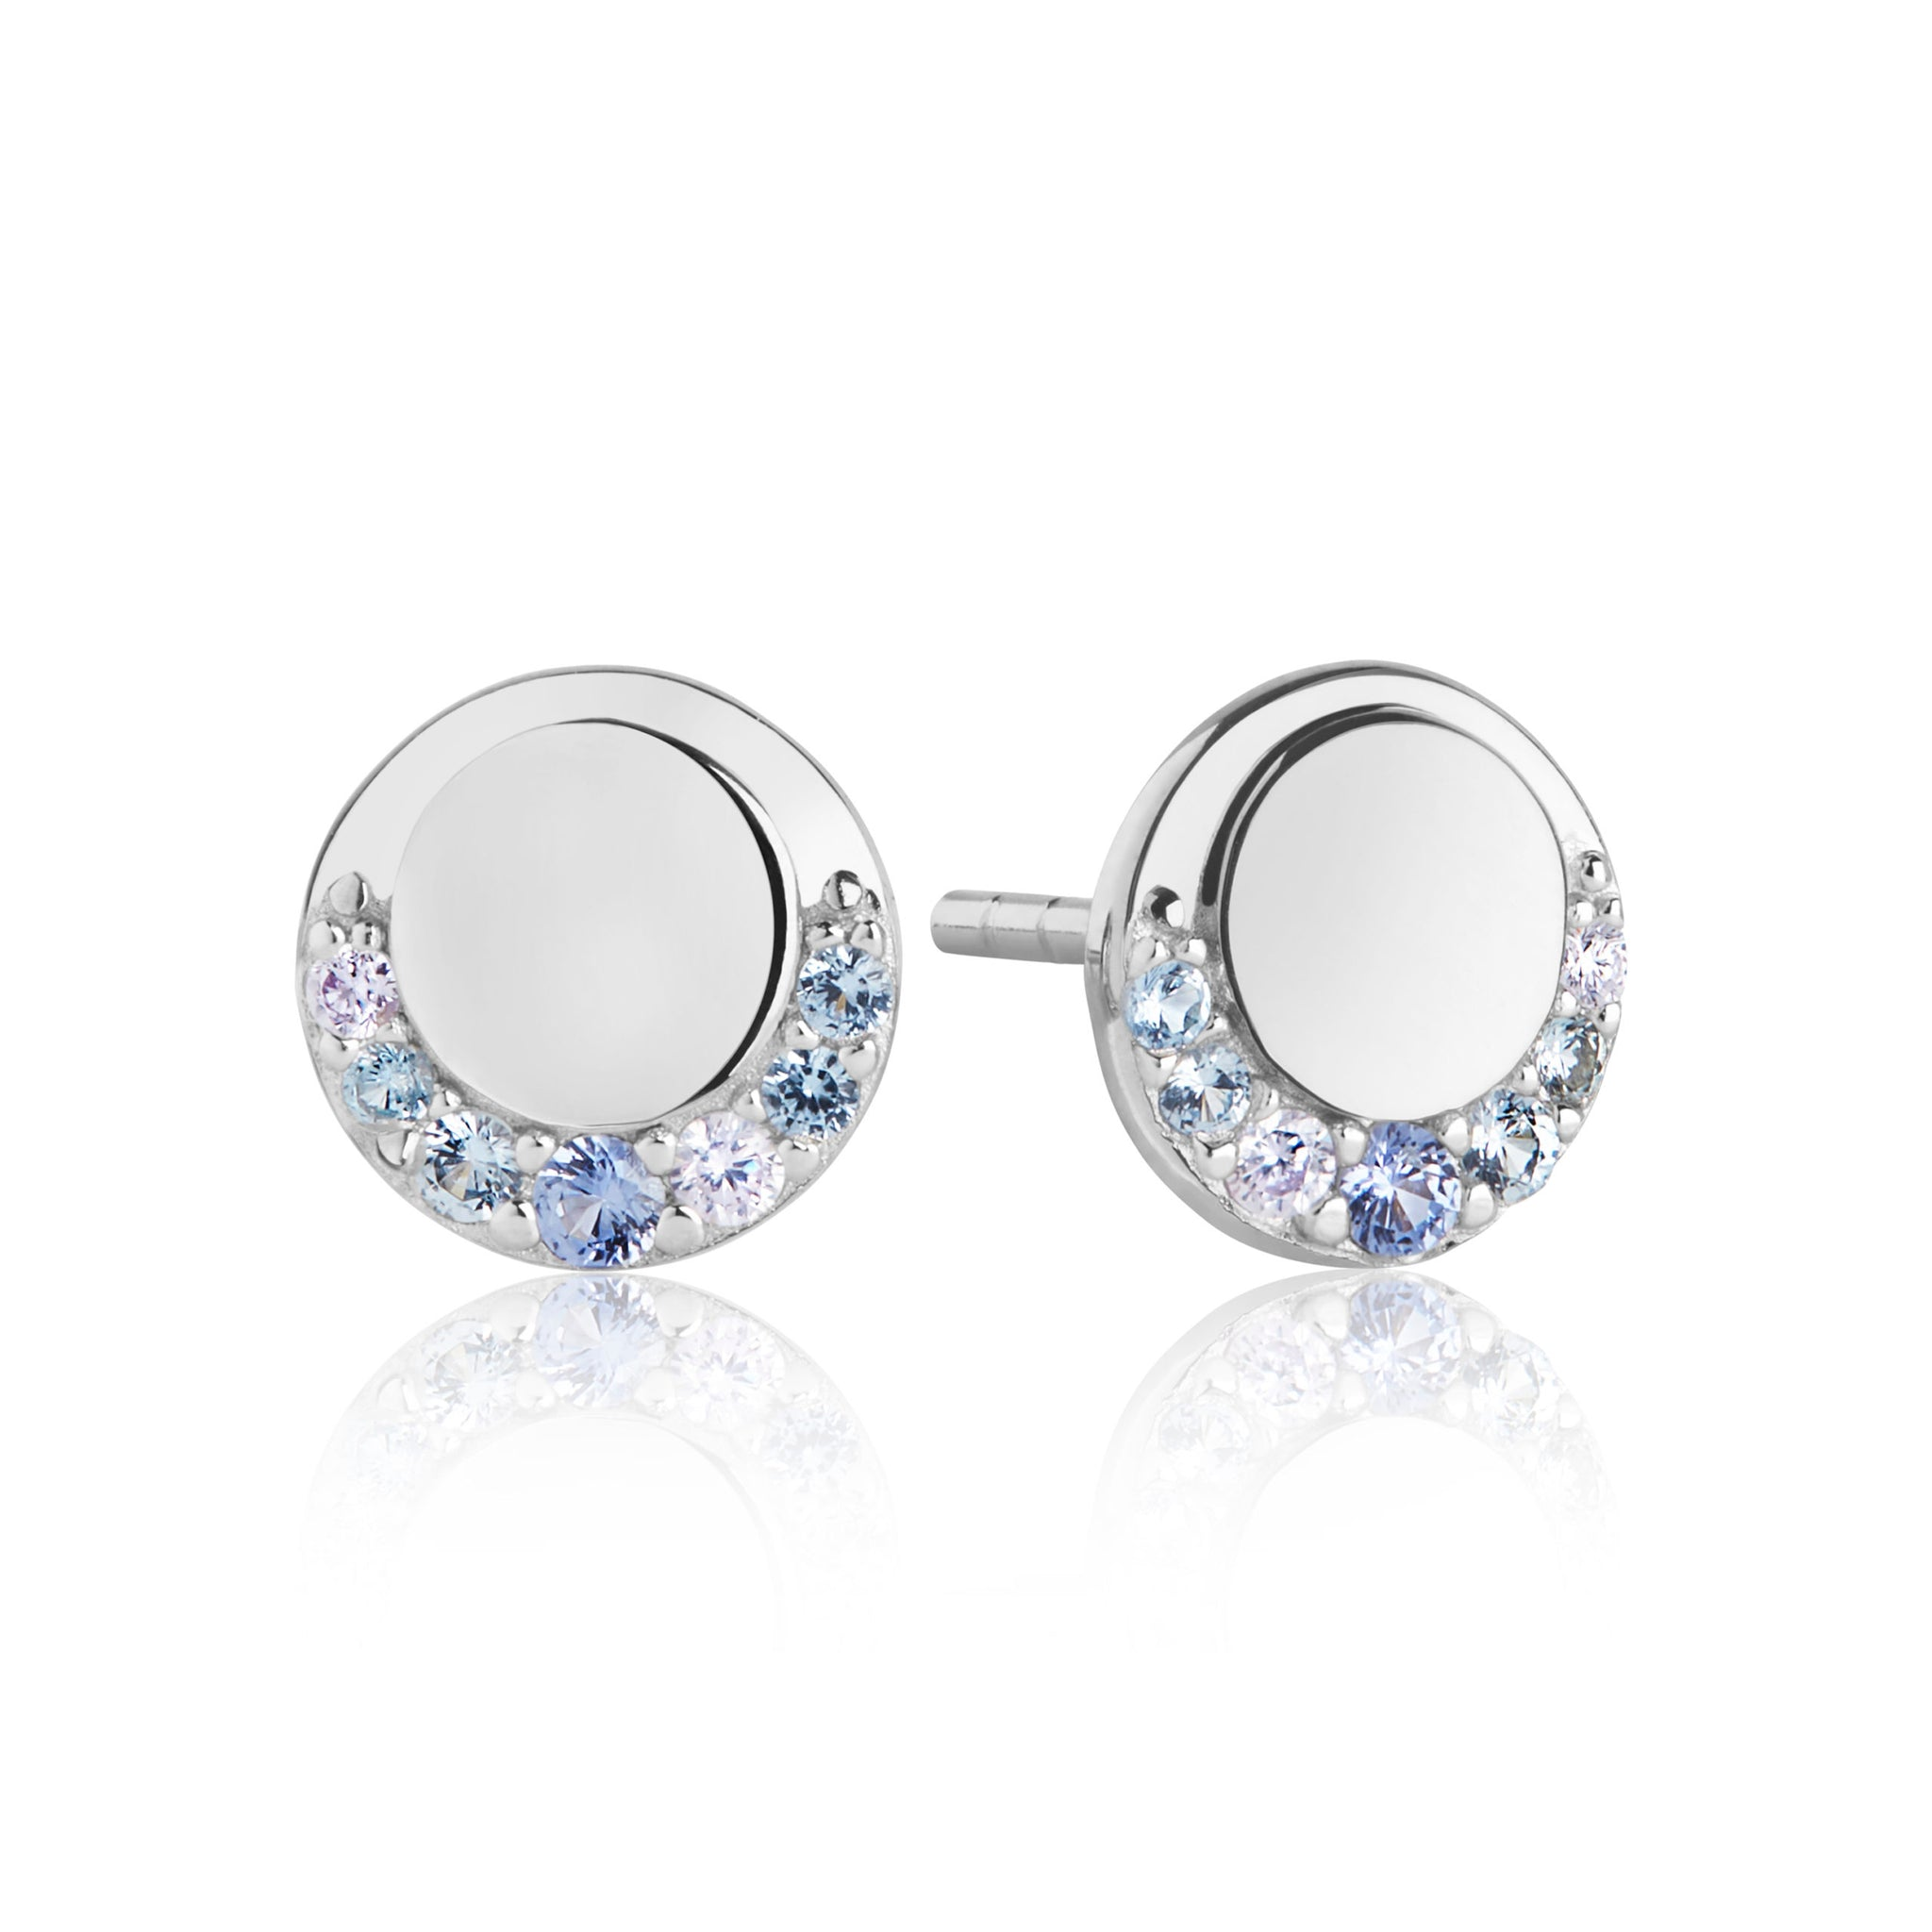 SIF JAKOBS PORTOFINO PICCOLO EARRINGS